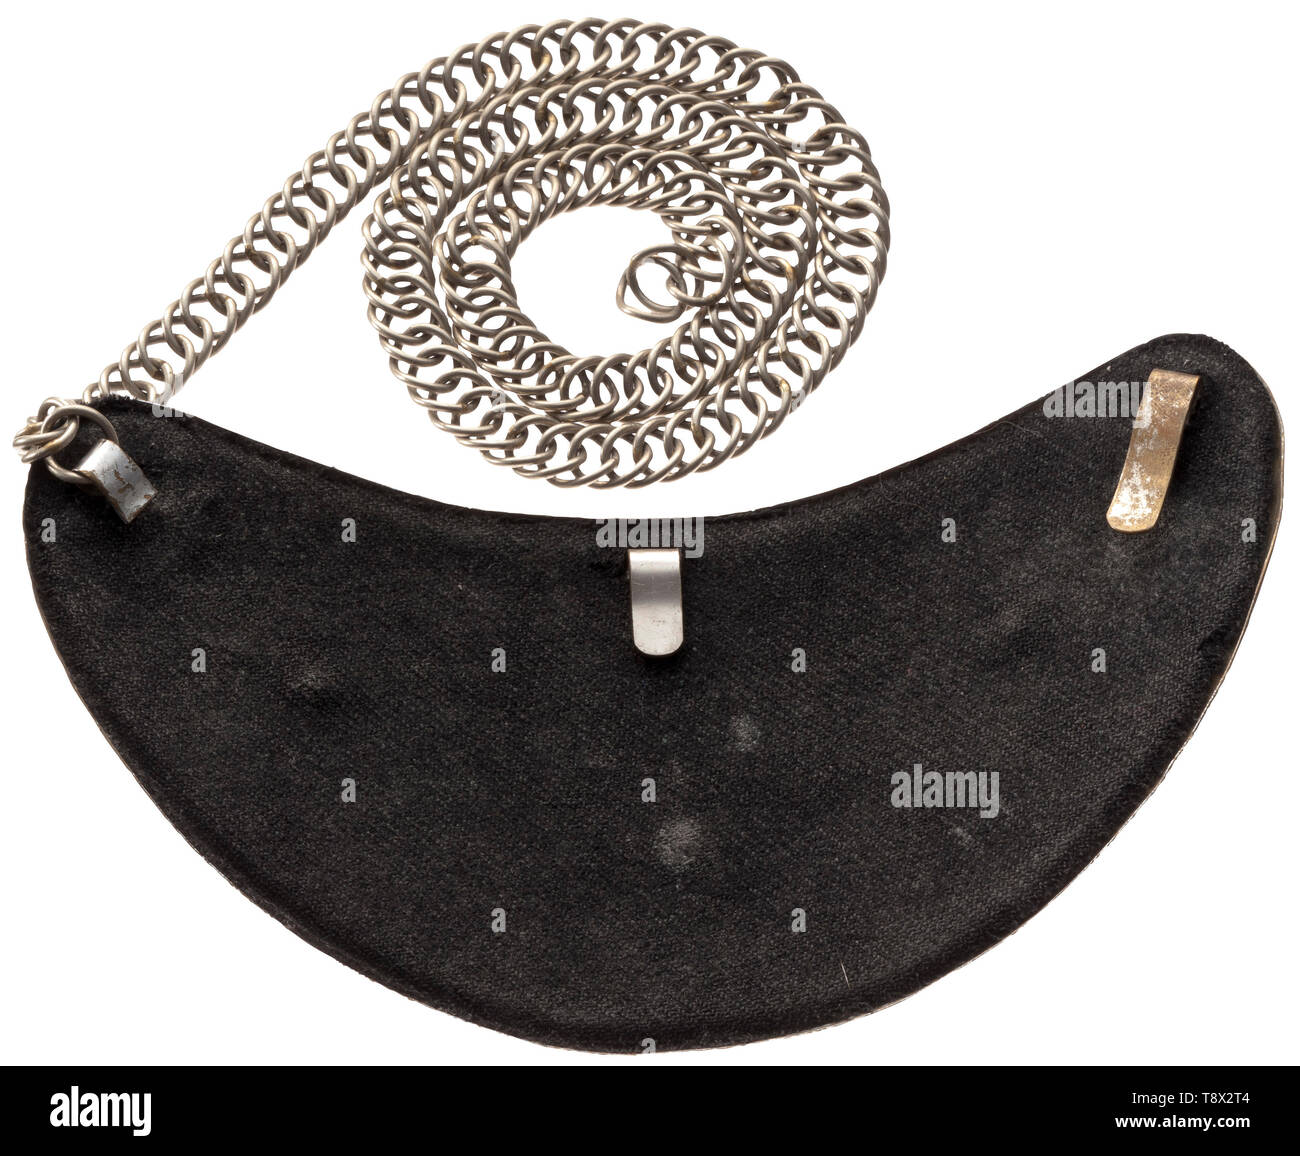 A gorget model 1936 'SS-Funkschutz' Kidney-shaped, hard nickel-plated gorget with applied, gilt bandeau 'SS-Funkschutz' in block lettering, corner rosettes. Black liner, shortened arresting clasp, nickel chain. The SS-Funkschutz (tr. radio security) was constituted in 1935 from the SS radio guard/watch of the ten regional Reich broadcasting stations. In April 1933 in connection with the seizure of power, Goebbels became Reich Broadcast Leader, taking over all transmitters of the Reich Broadcast Association and coordinating them with the Reich broadcasting scheme. It was a p, Editorial-Use-Only - Stock Image